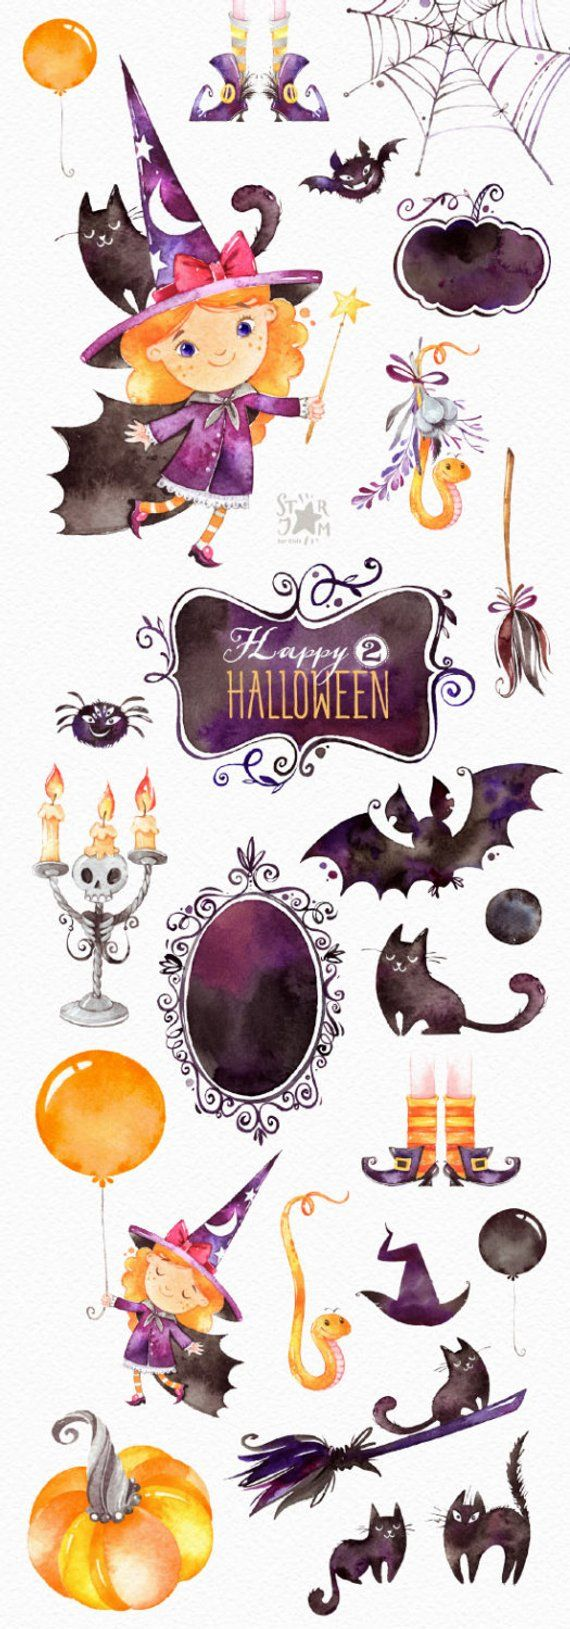 Happy Halloween 2. Watercolor clipart, bat, little witch, magic, bunting banners, frames, boo, skull, greeting, invite, floral, print, kids – Hasen frau